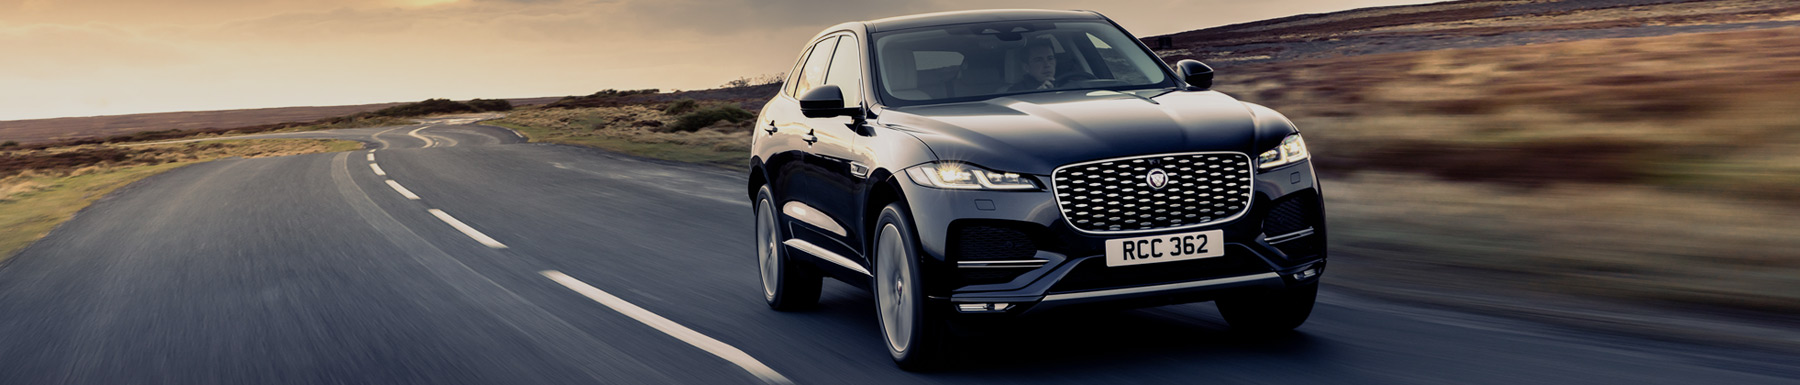 Jaguar F Pace Sell Your Car At Northcoventry Header